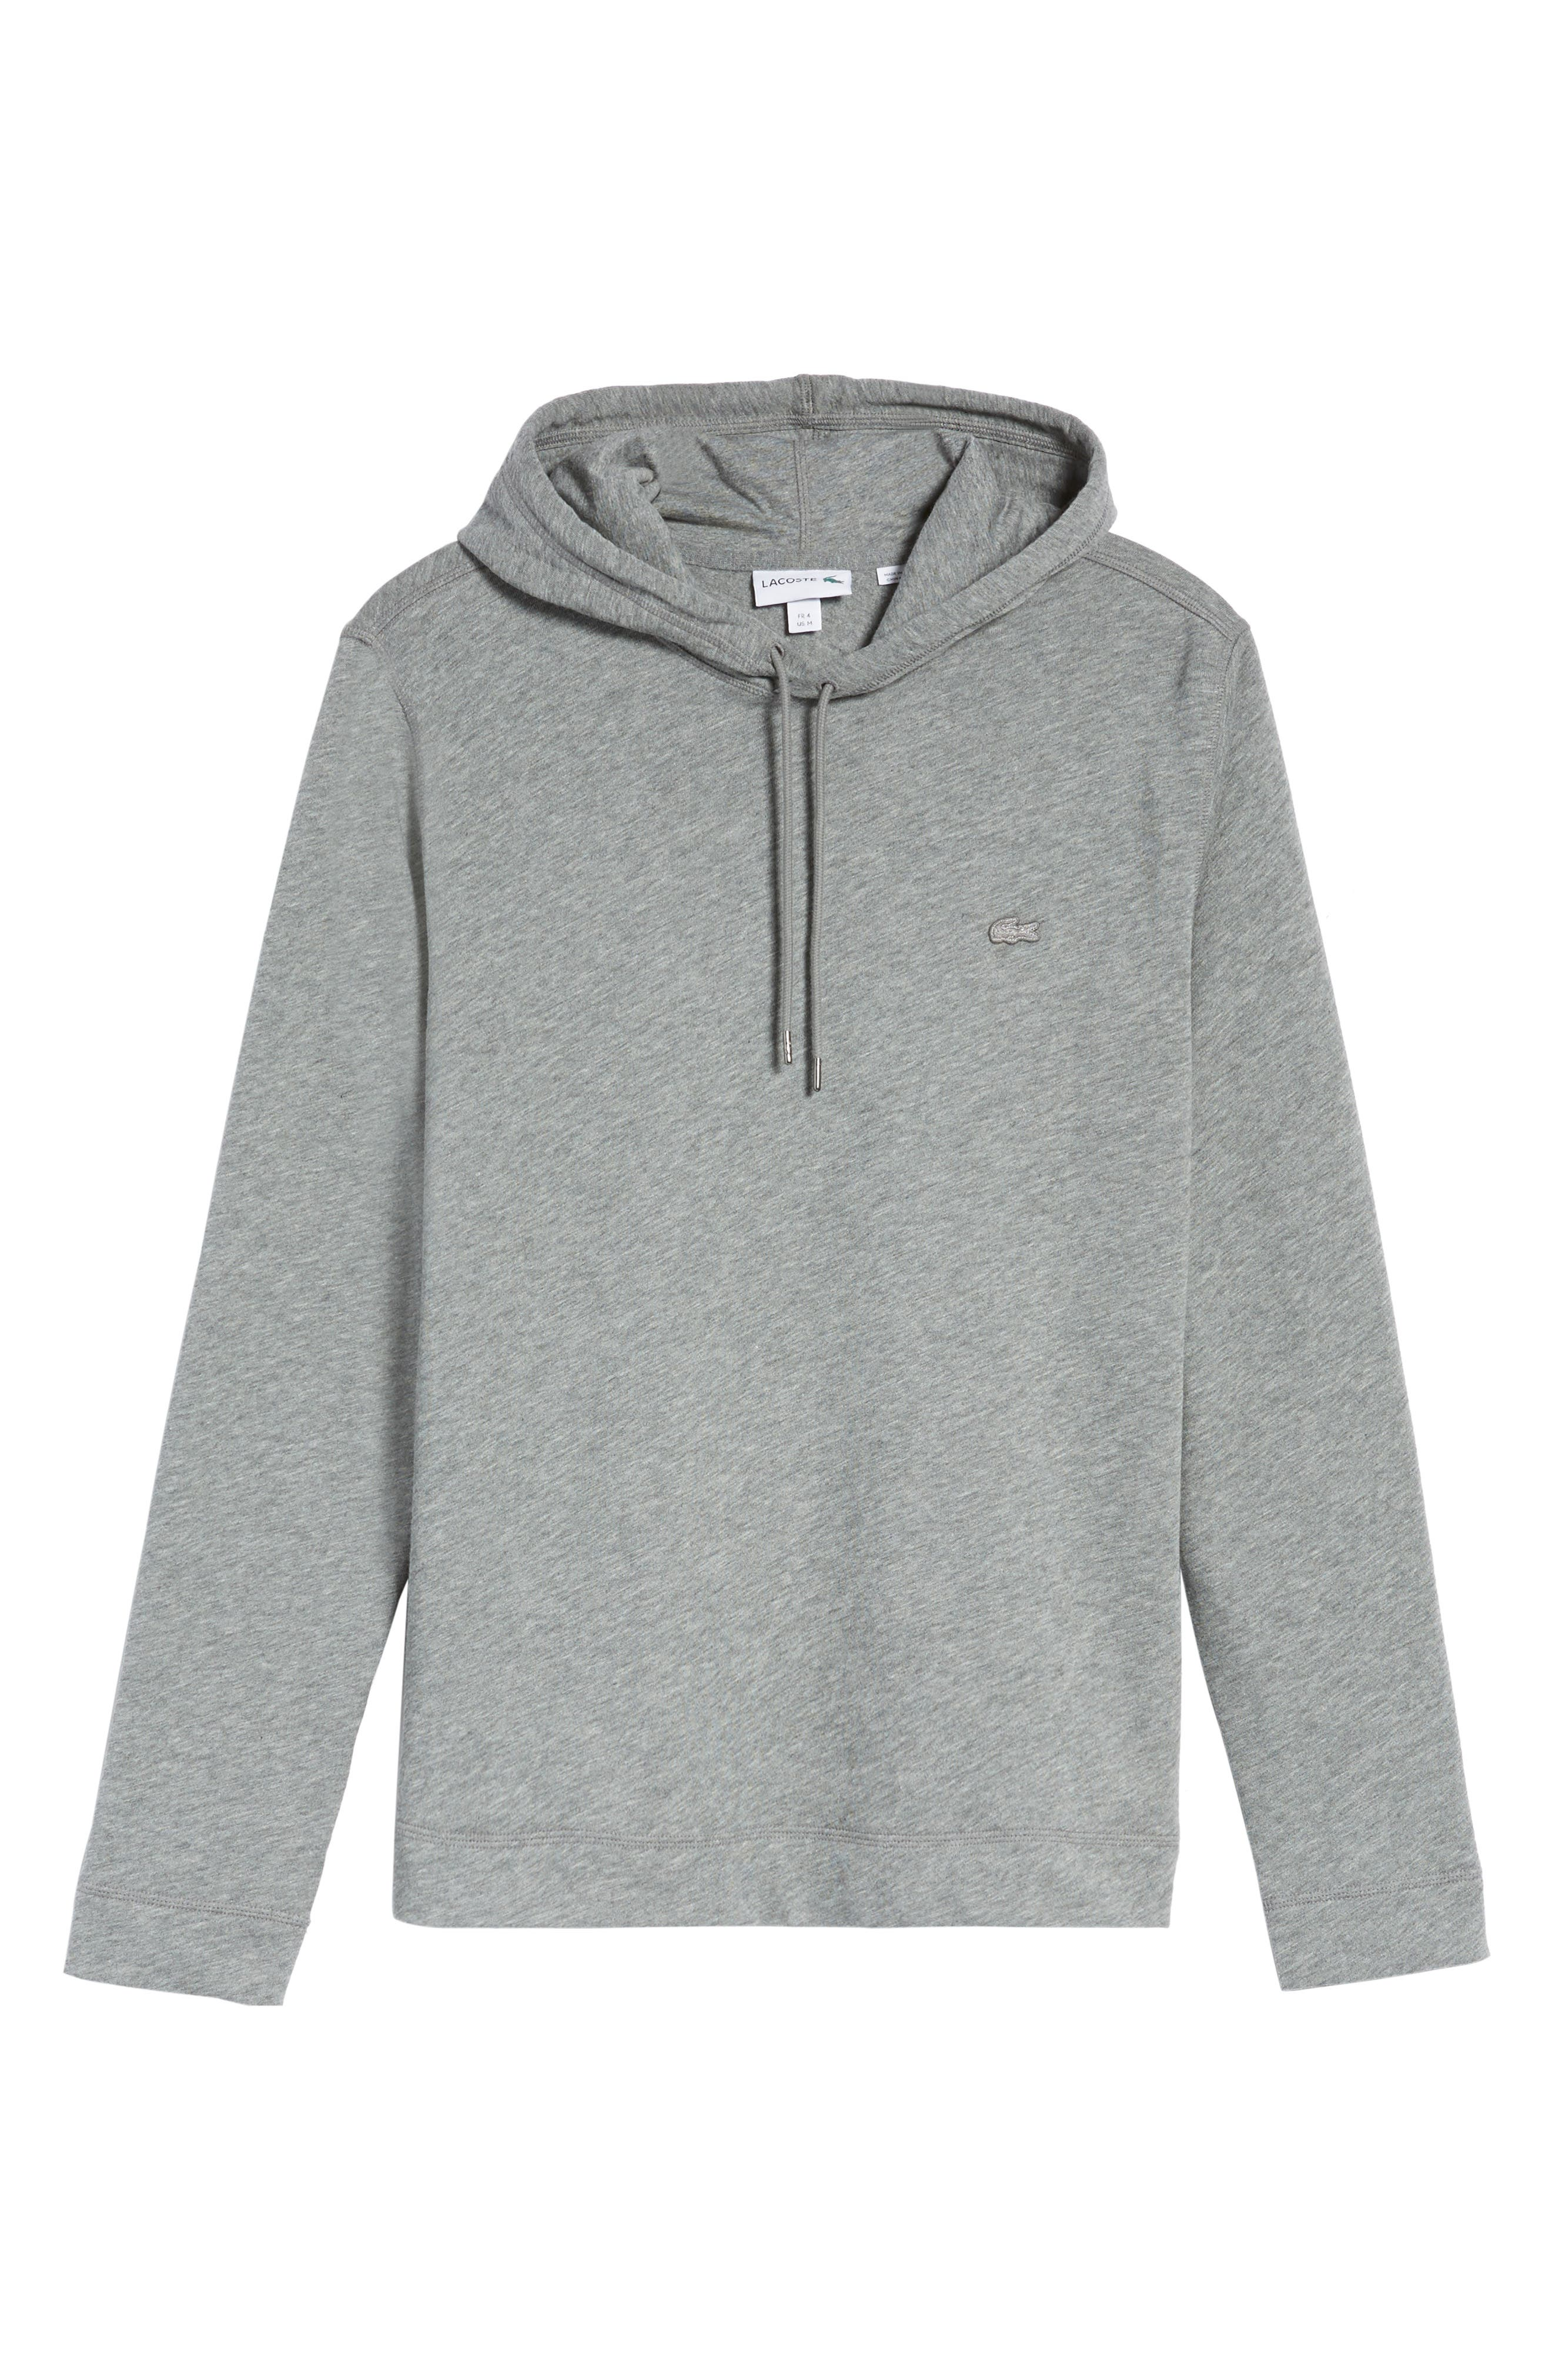 Brushed Fleece Hoodie,                         Main,                         color, Galaxite Chine